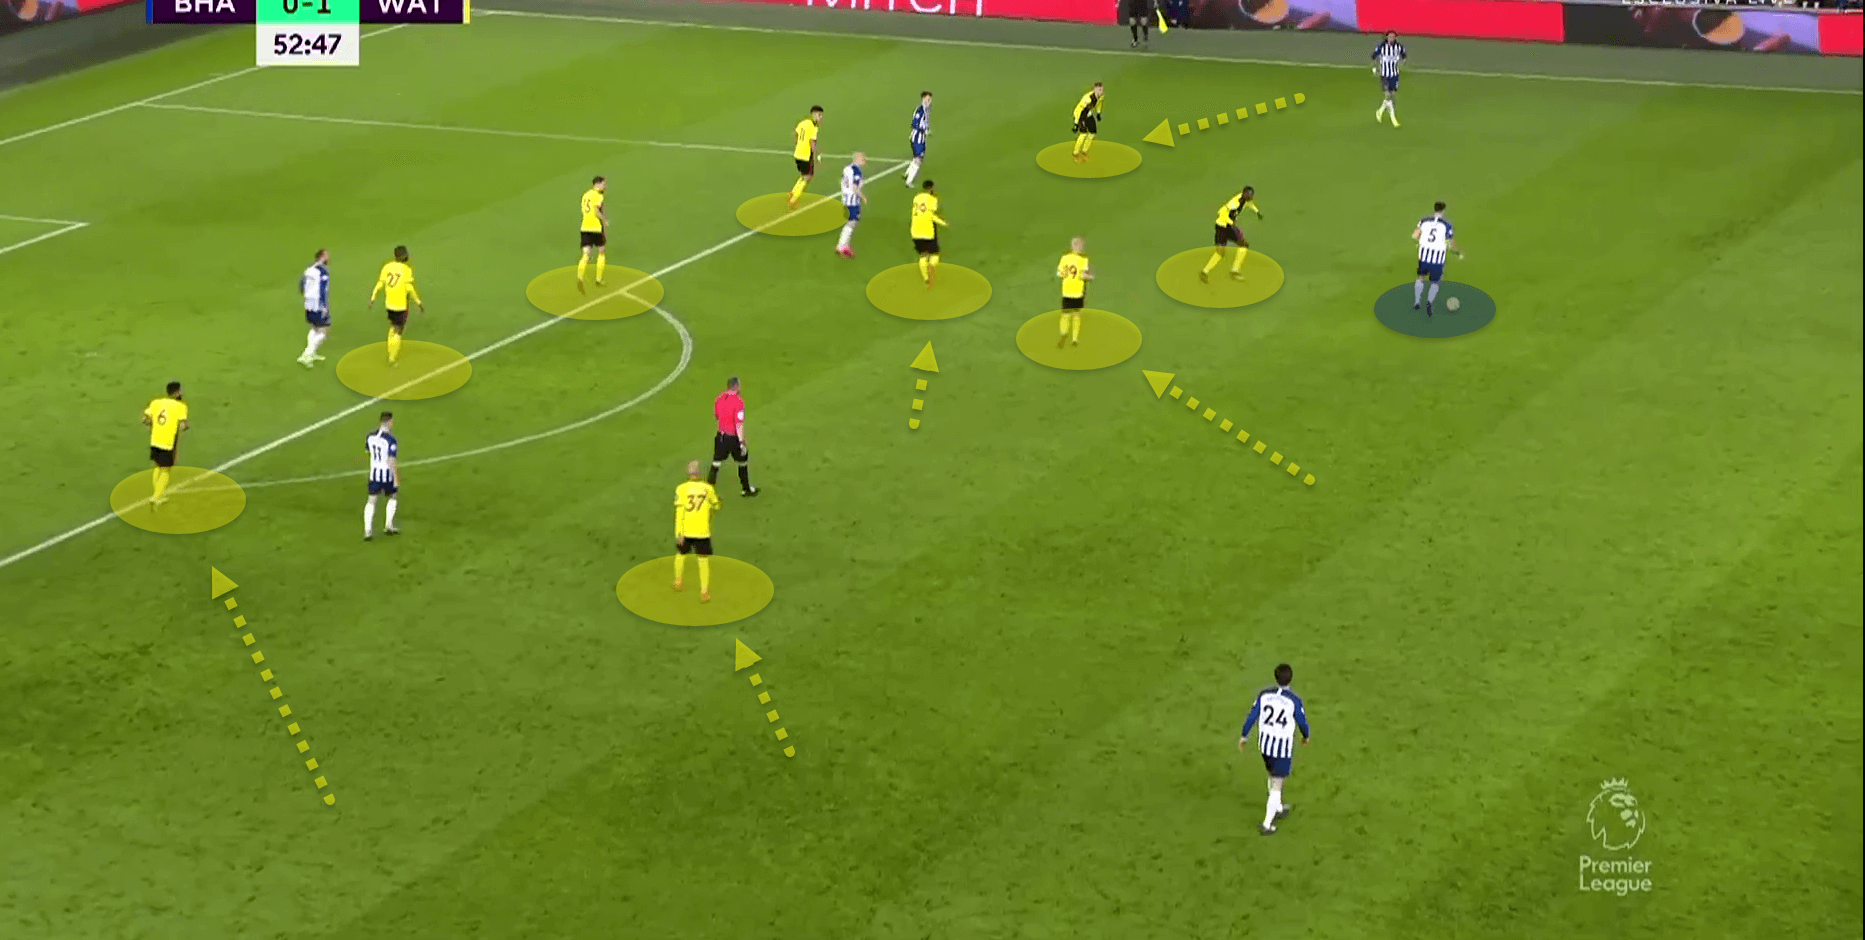 Premier League 2019/20: Brighton & Hove Albion v Watford - Tactical Analysis tacics